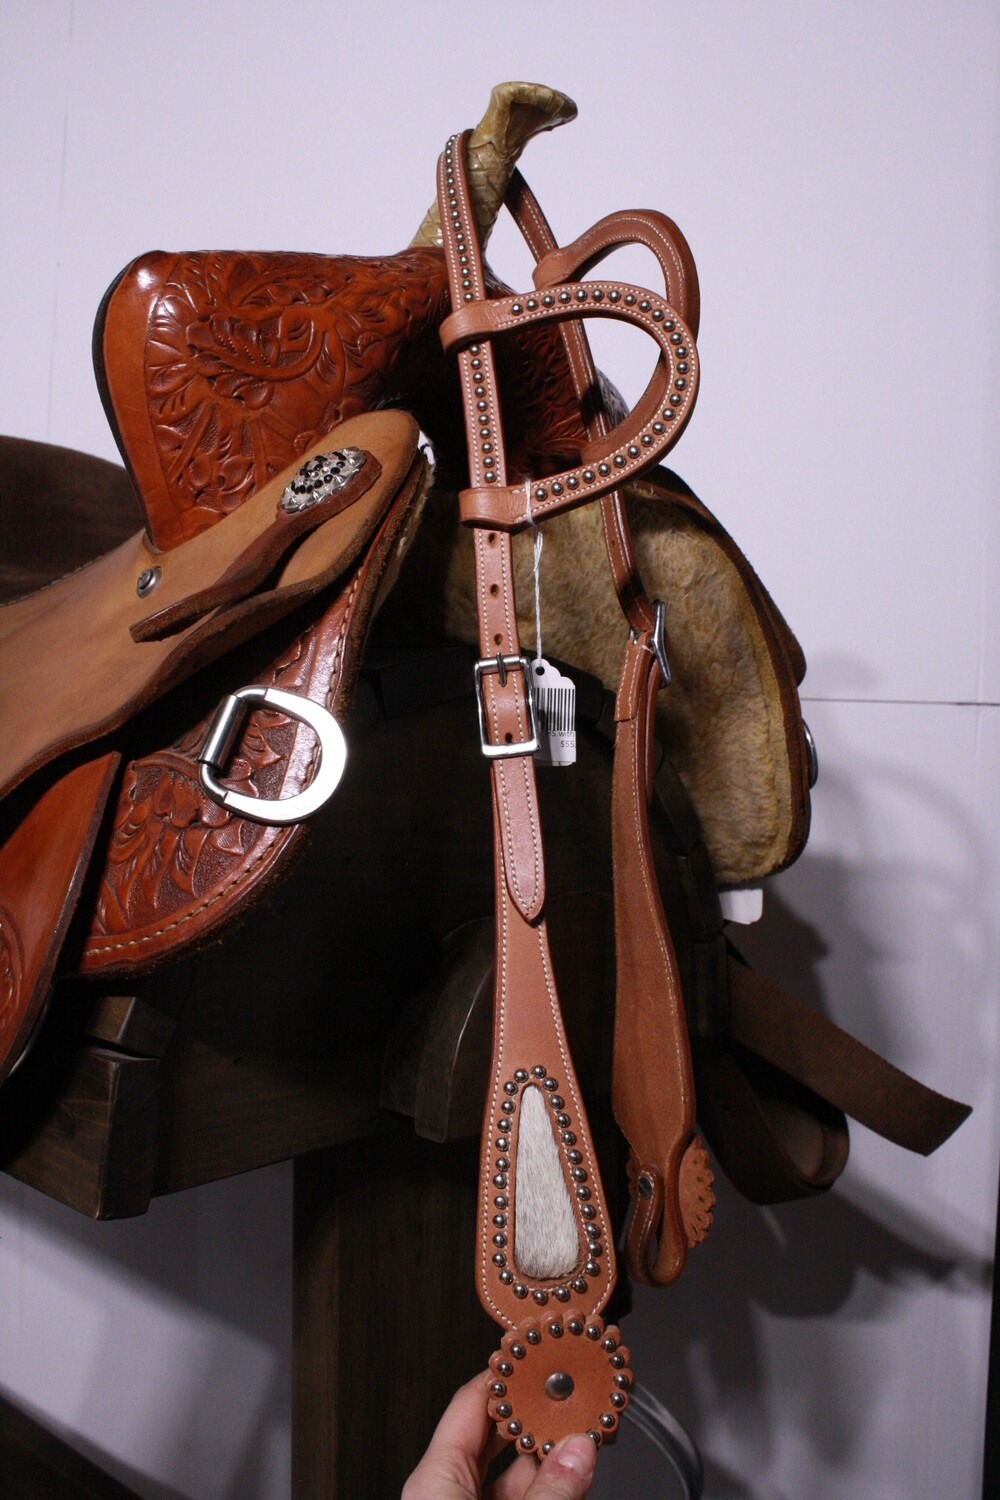 Western Star Double Ear HS with Cowhide/Studs/Chicago Screws